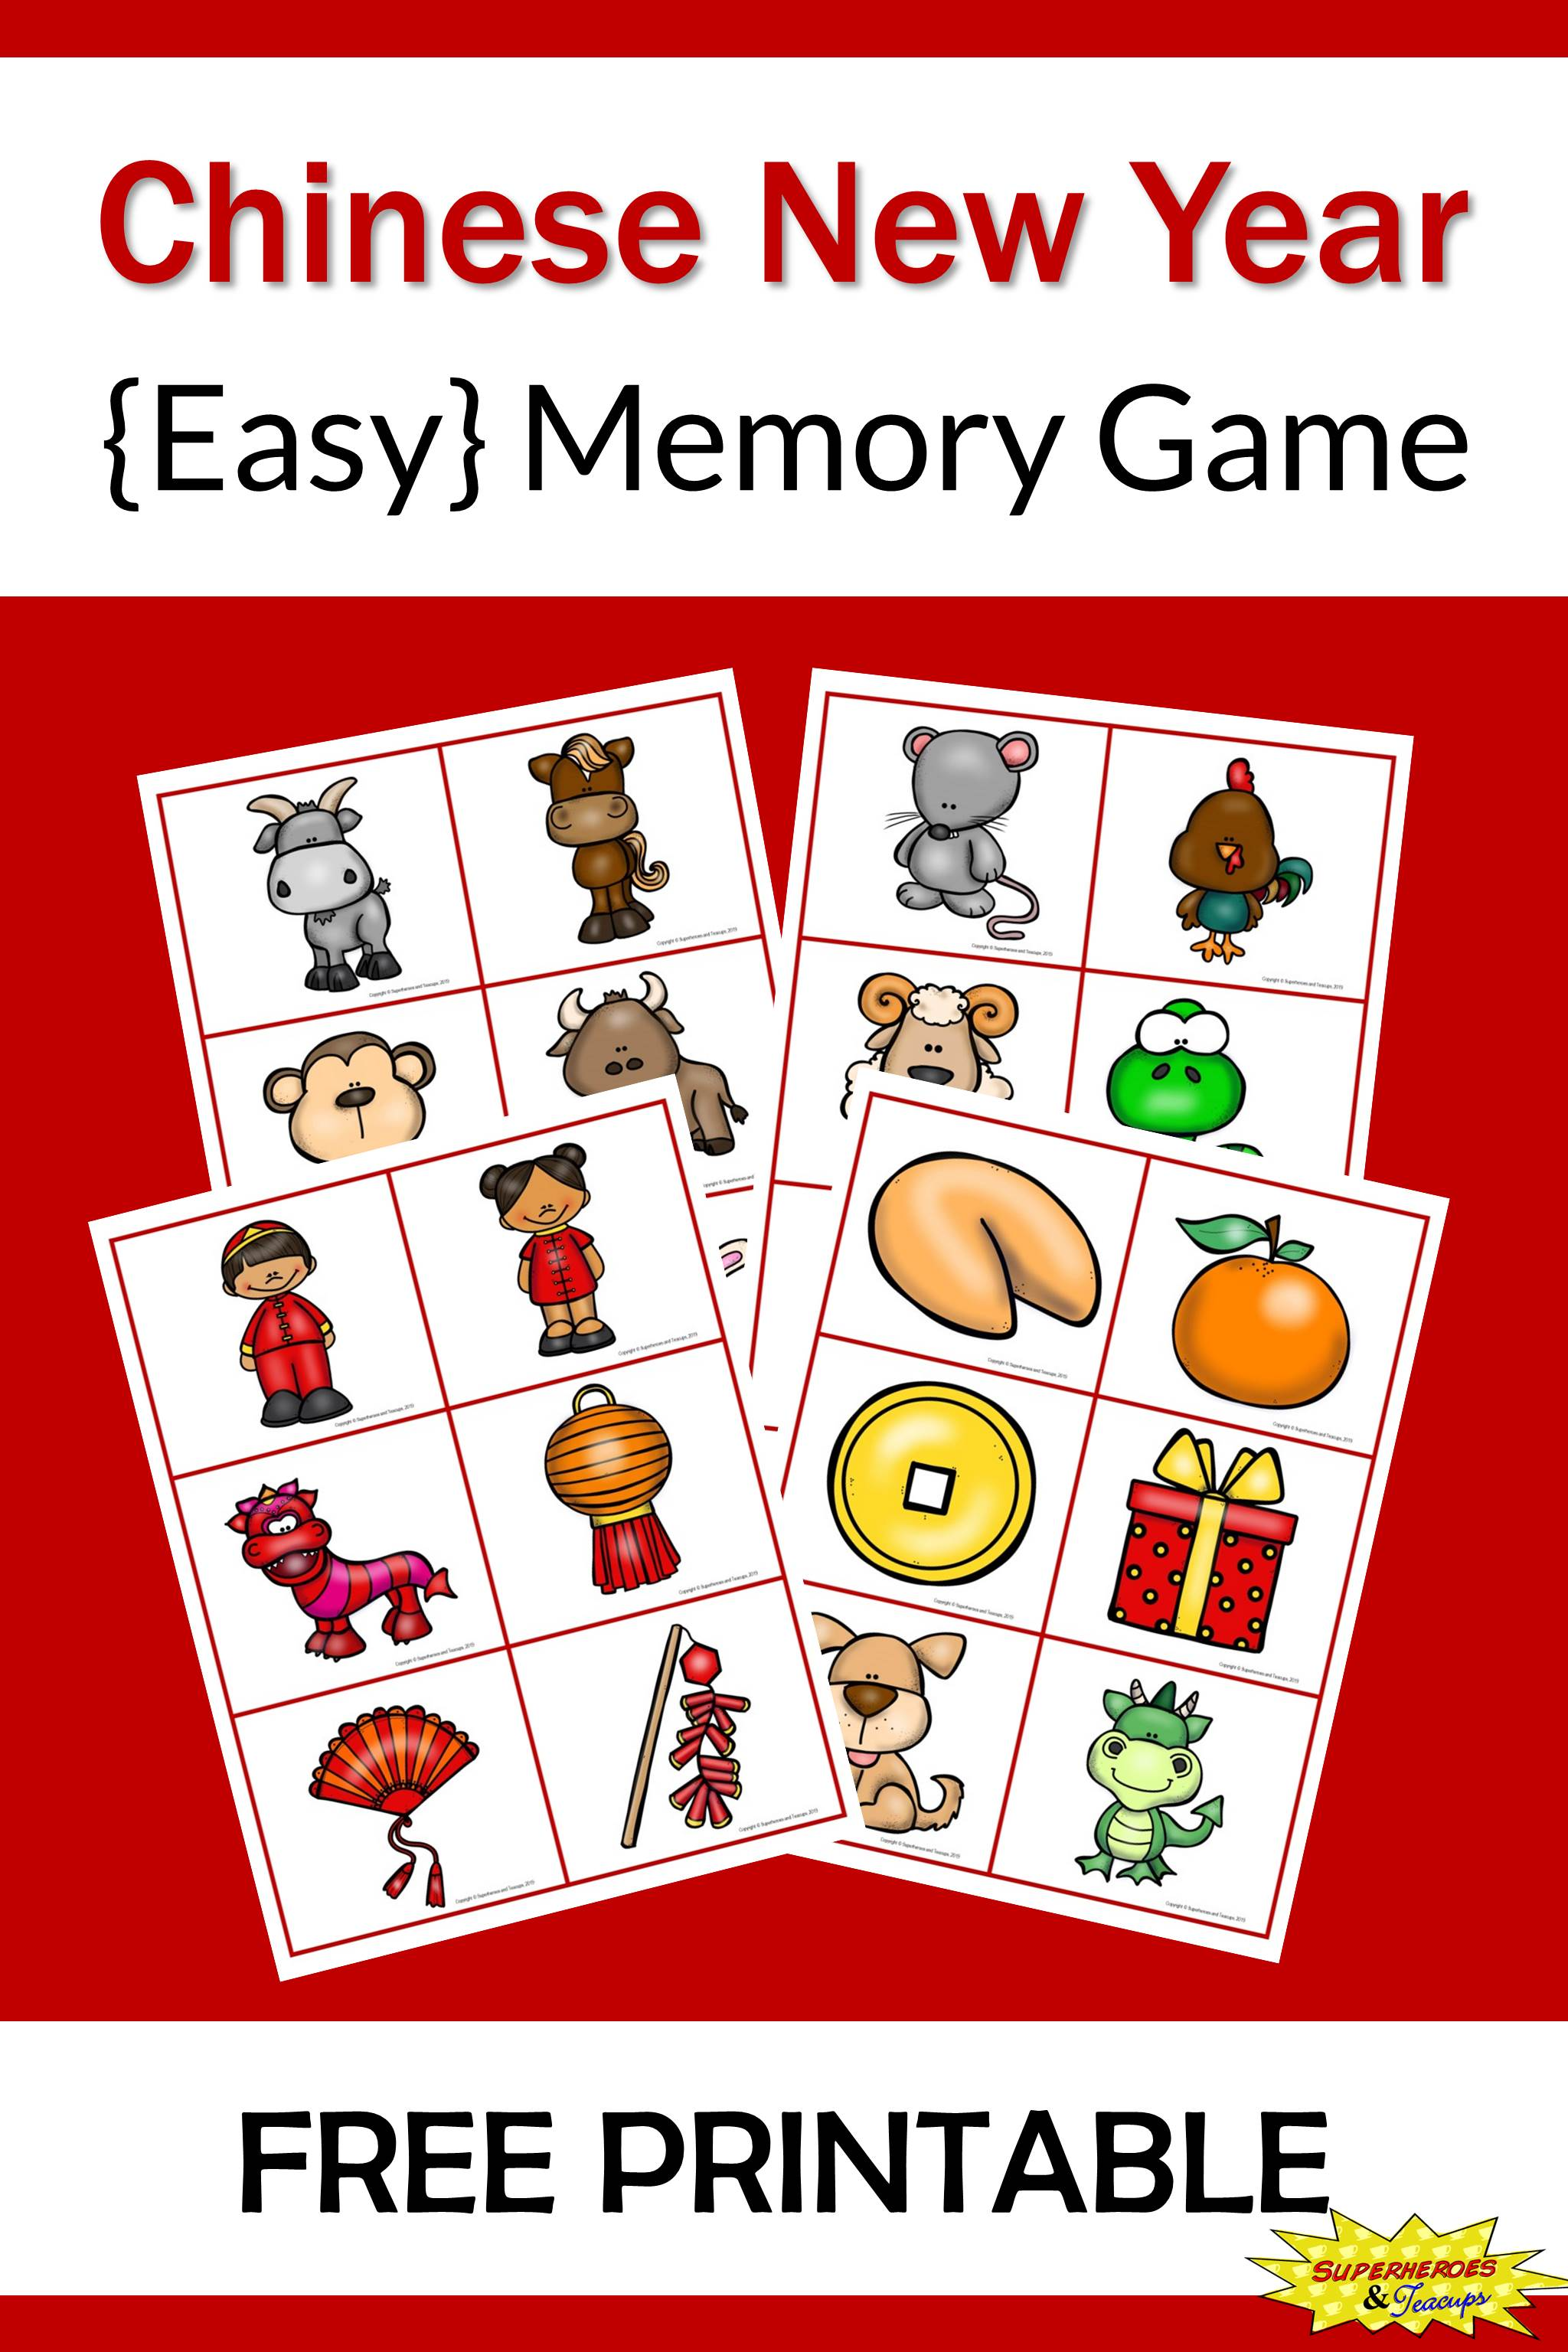 Help your child better understand Chinese New Year with this easy memory game. It includes 24 pictures all related to the holiday. Click through to download your copy! #memorygames #freeprintables #matchinggames #ChineseNewYear #learningideas #superheroesandteacups